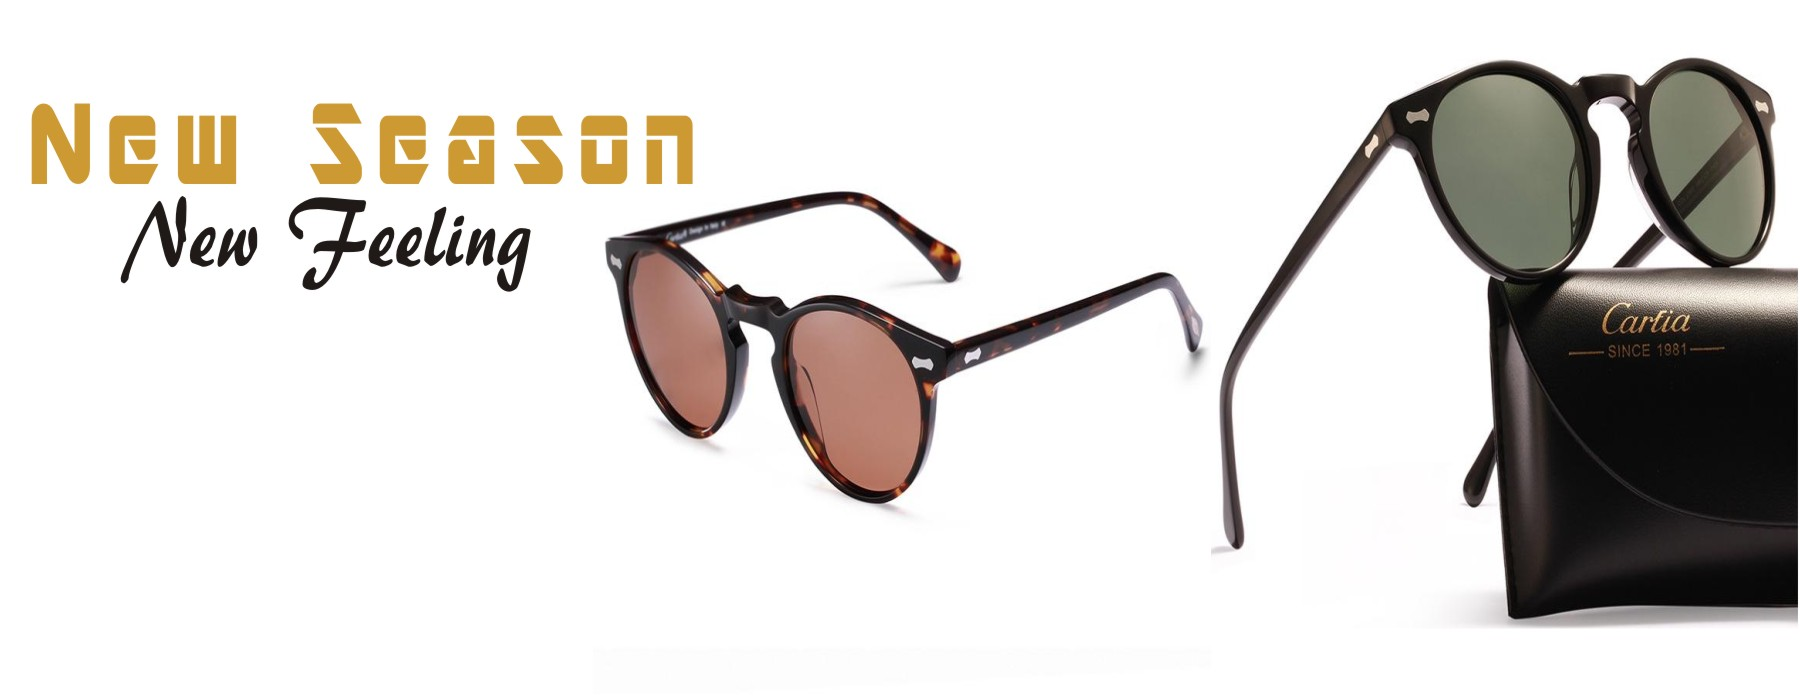 catalog/New June Upload/Sunglassesqq.JPG